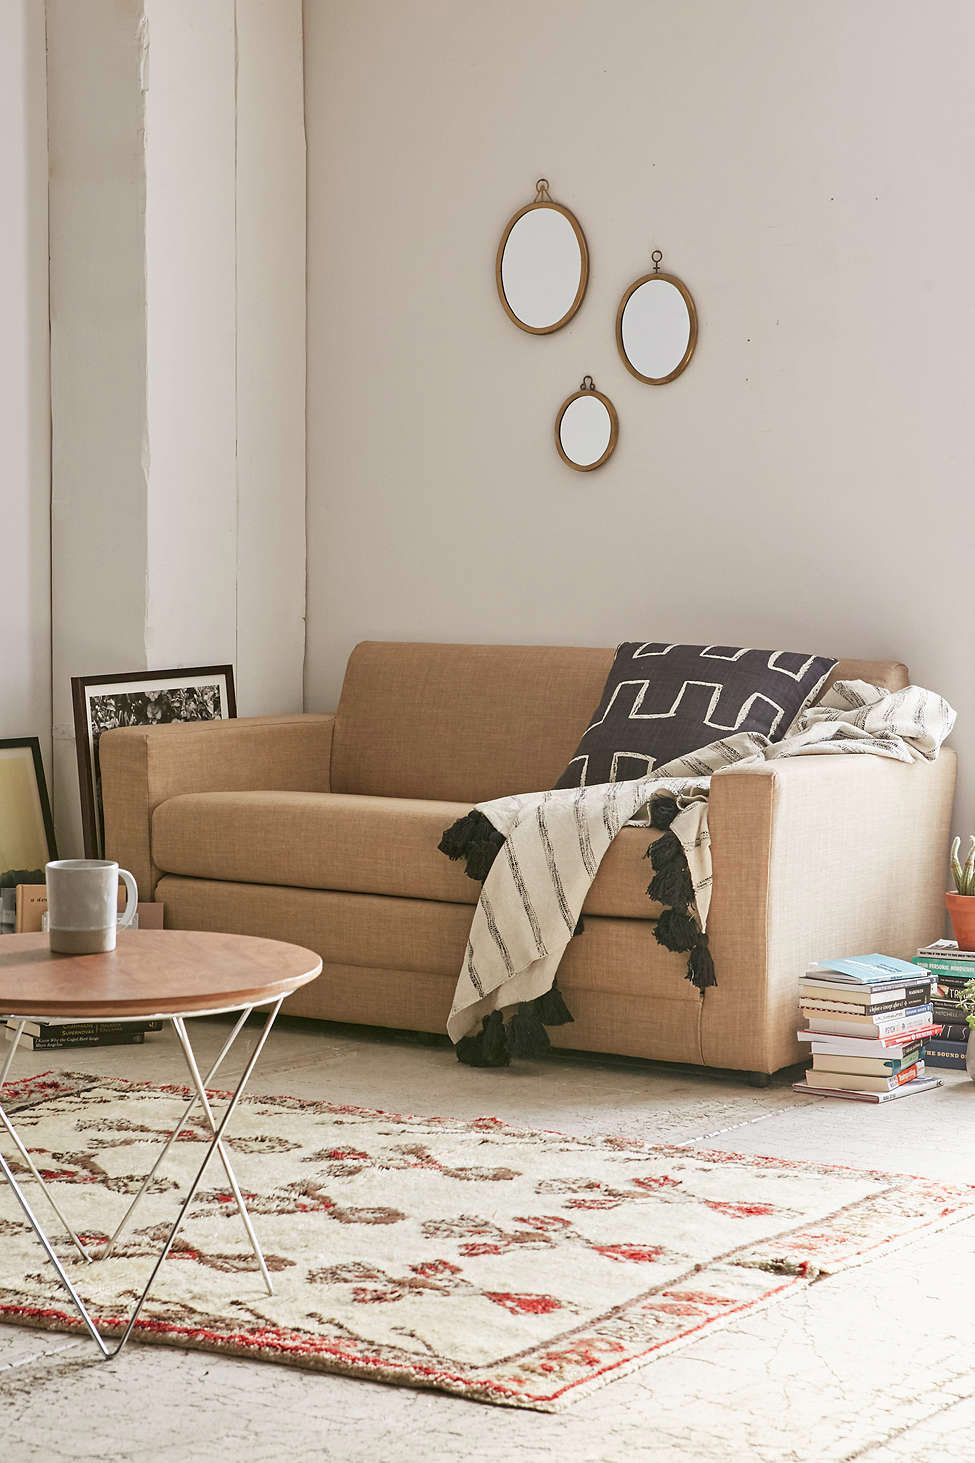 This Great Simple Sofa Is Actually A Convertible That Turns Into Bed On The Floor For Your Overnight Guests If You Want Something More Modern And